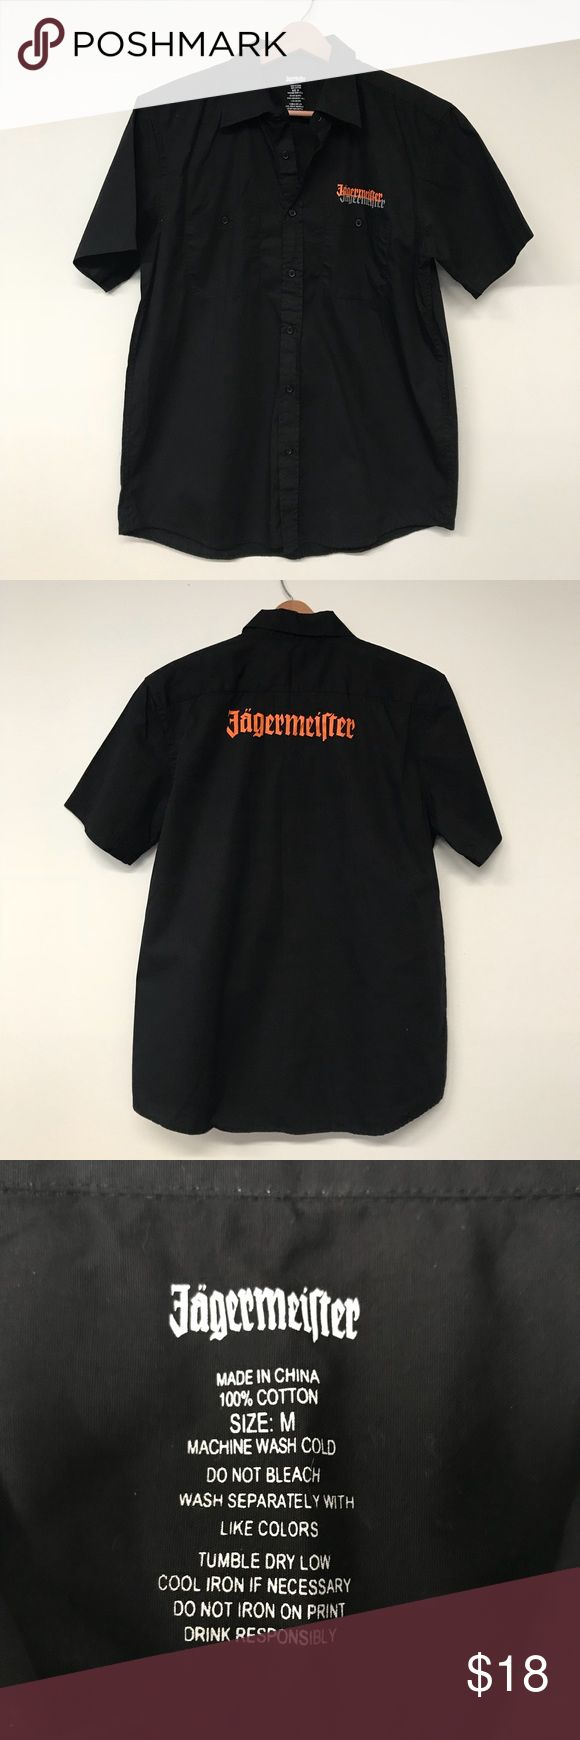 """Men's Jagermeister Button Down Shirt Button down shirt with the Jagermeister logo on the front and back. Two pockets on the front. In perfect like new condition. Men's size medium. Smoke and pet free home. Measurements taken laid flat. 21.5"""" armpit to armpit. 30"""" long shoulder to hem. Jagermeister Shirts Casual Button Down Shirts"""